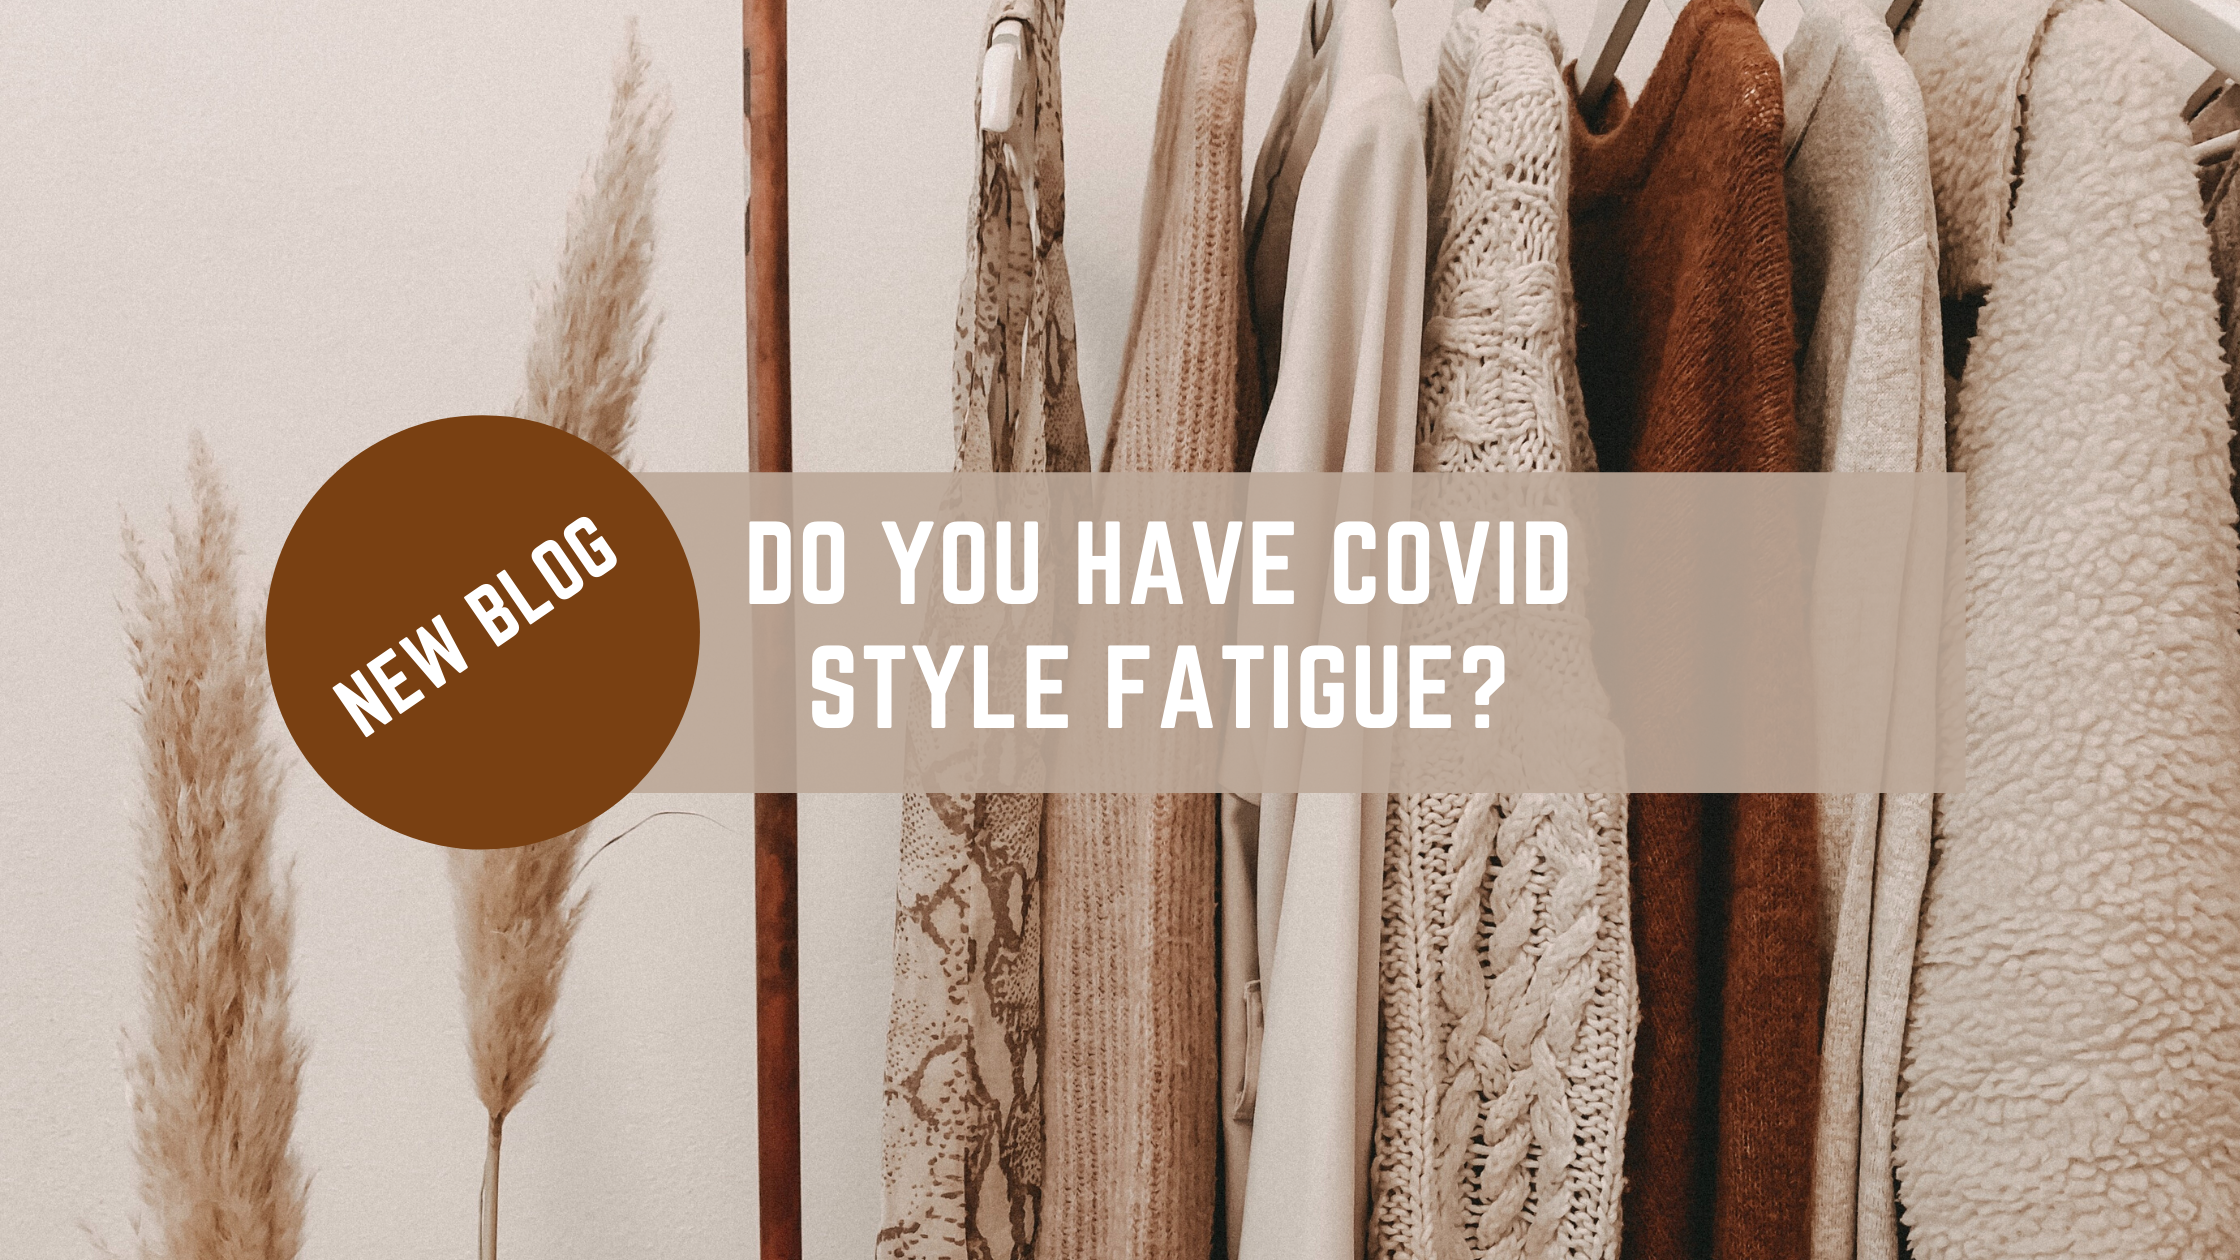 DO YOU HAVE COVID STYLE FATIGUE?